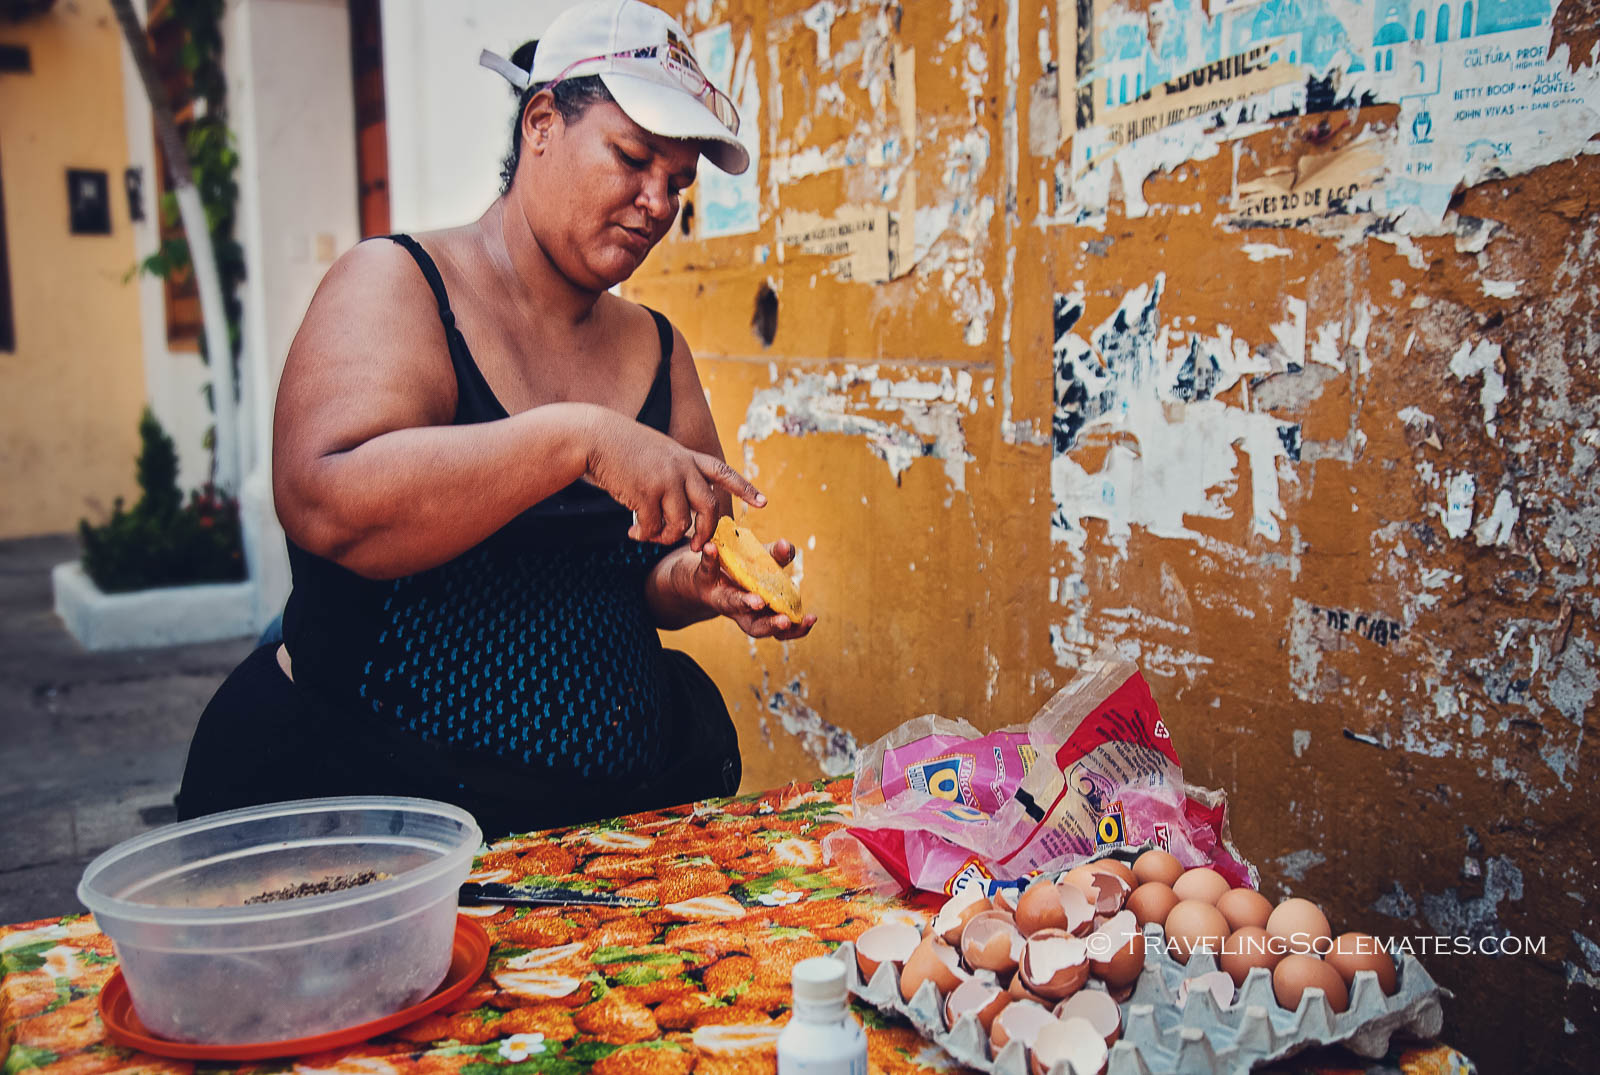 Food vendor in Getsemani, Cartagena, Colombia